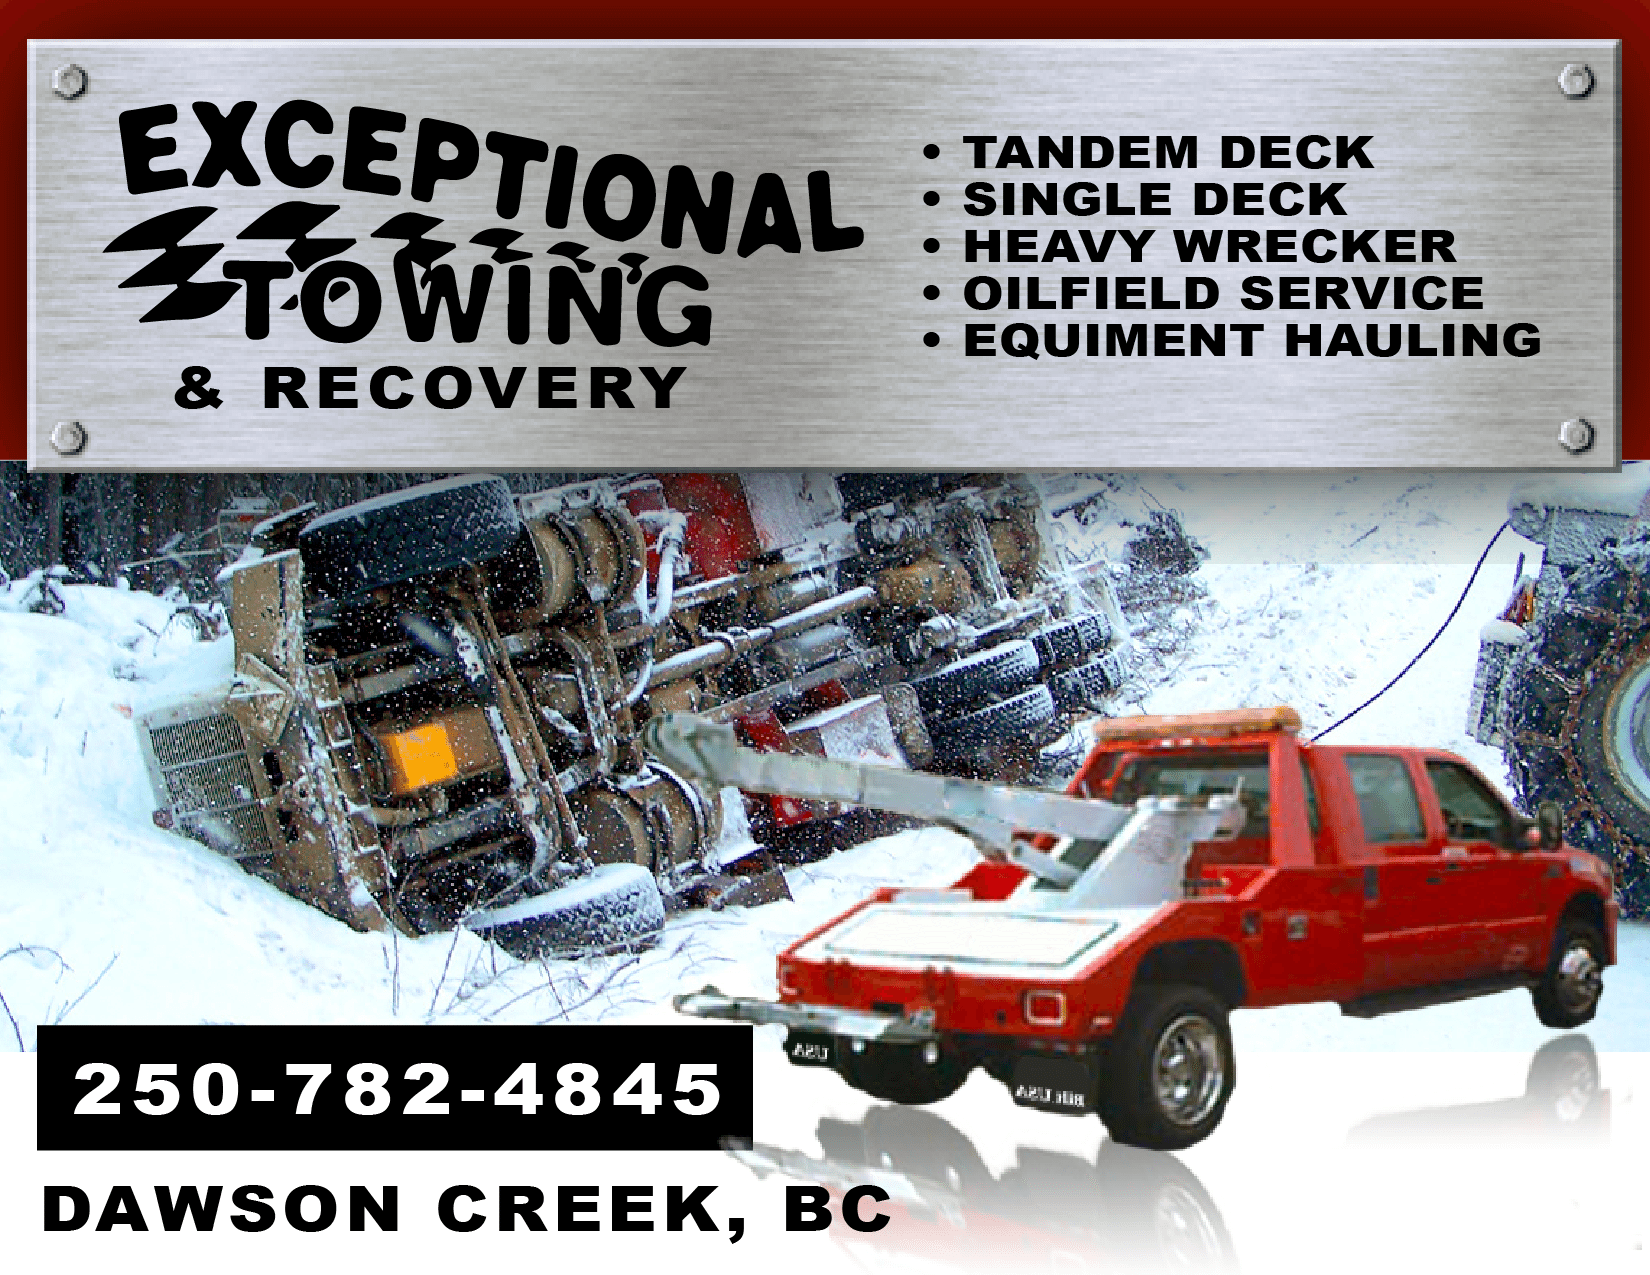 Exceptional Towing